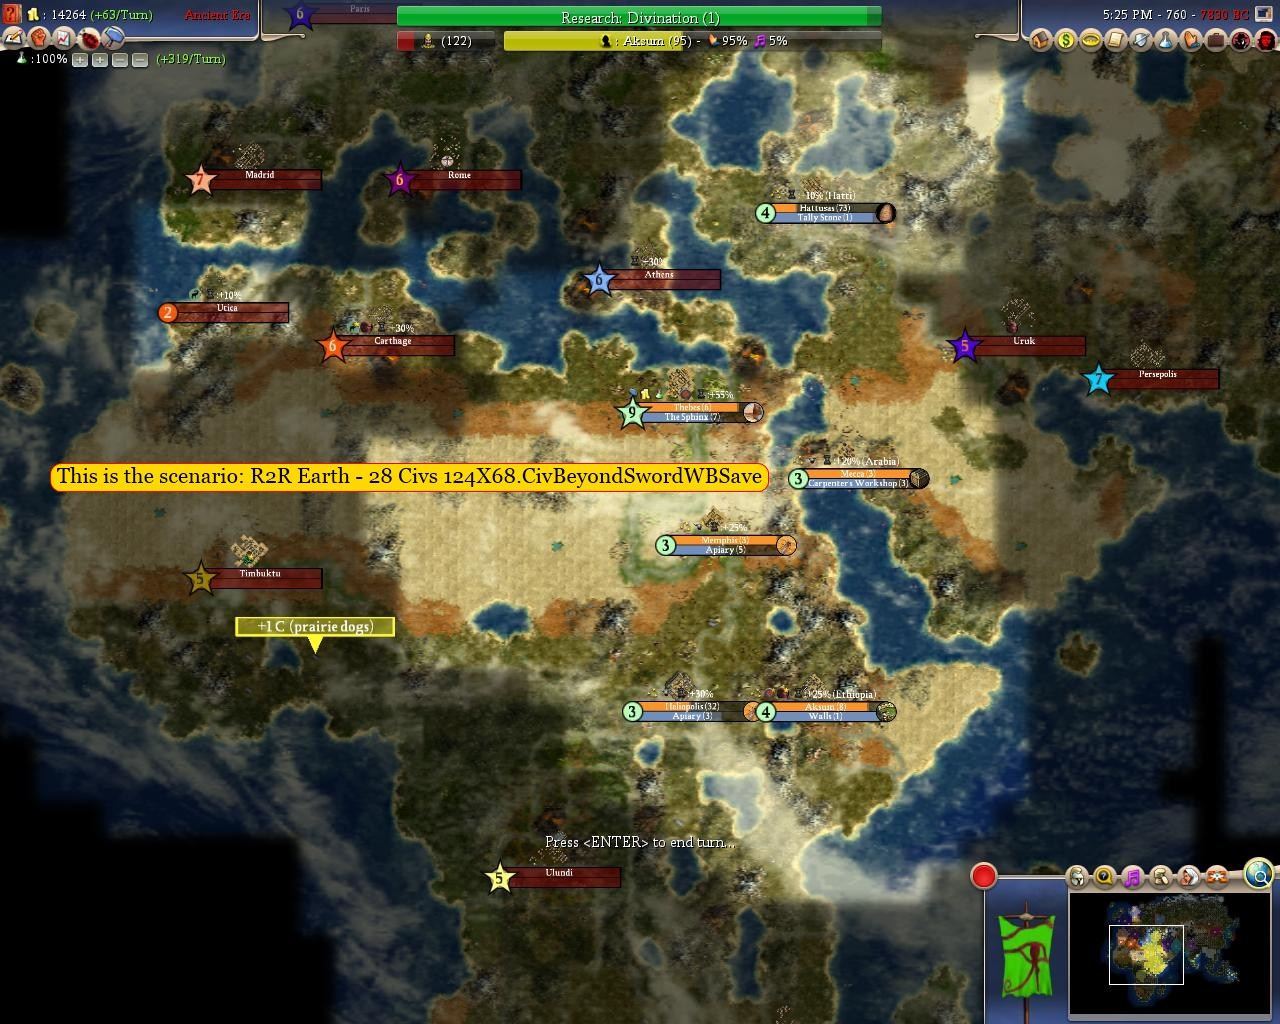 Civ 4 Earth Map.Earth Scenario Image Rocks 2 Rockets Mod For Civilization Iv